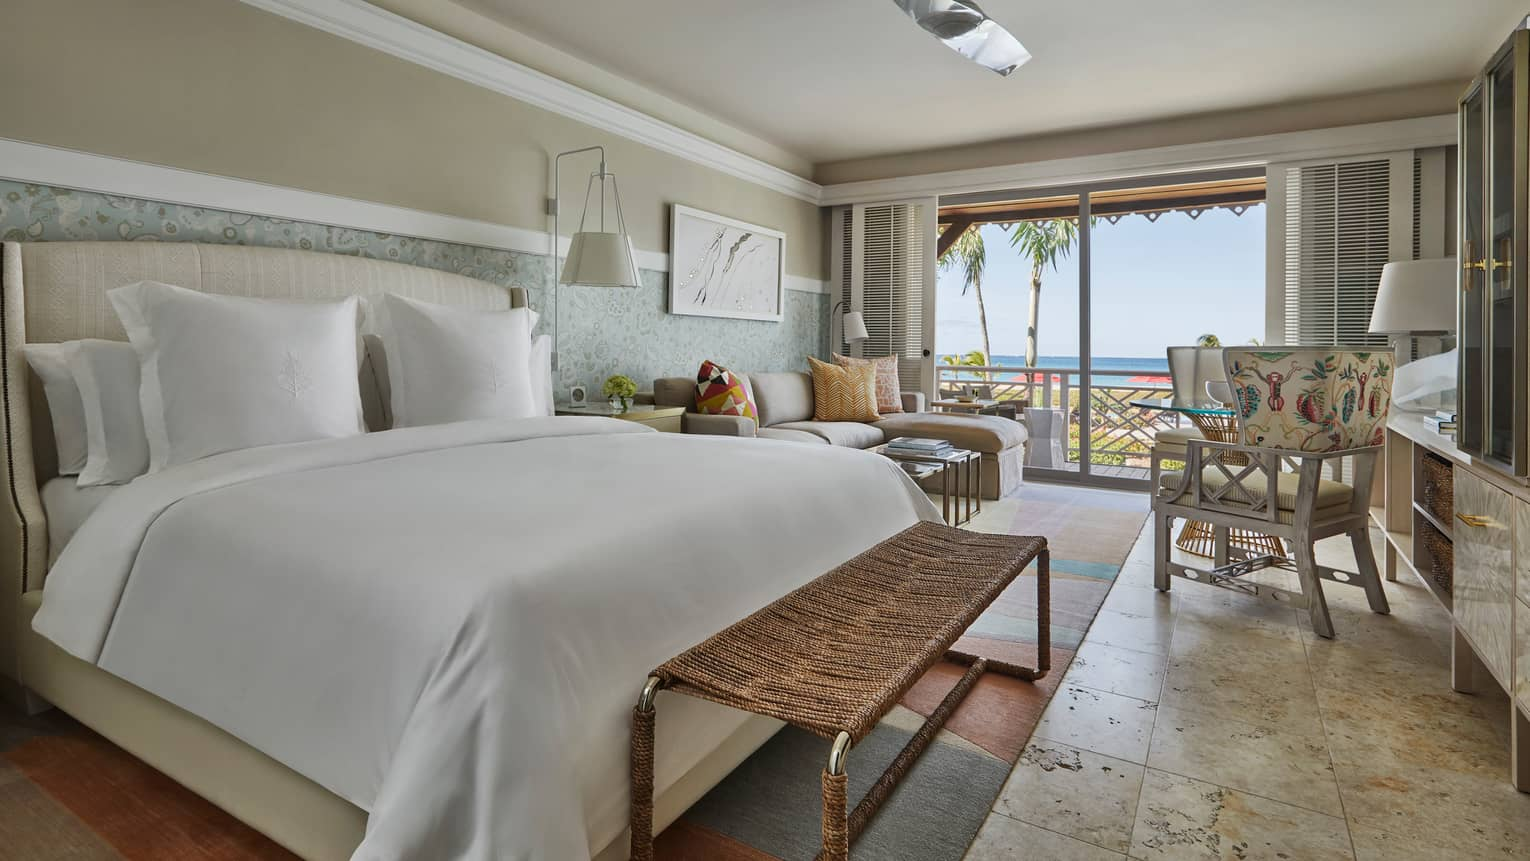 Ocean-View Room bed, wicker bench, chair, sofa by sunny balcony doors, shutters